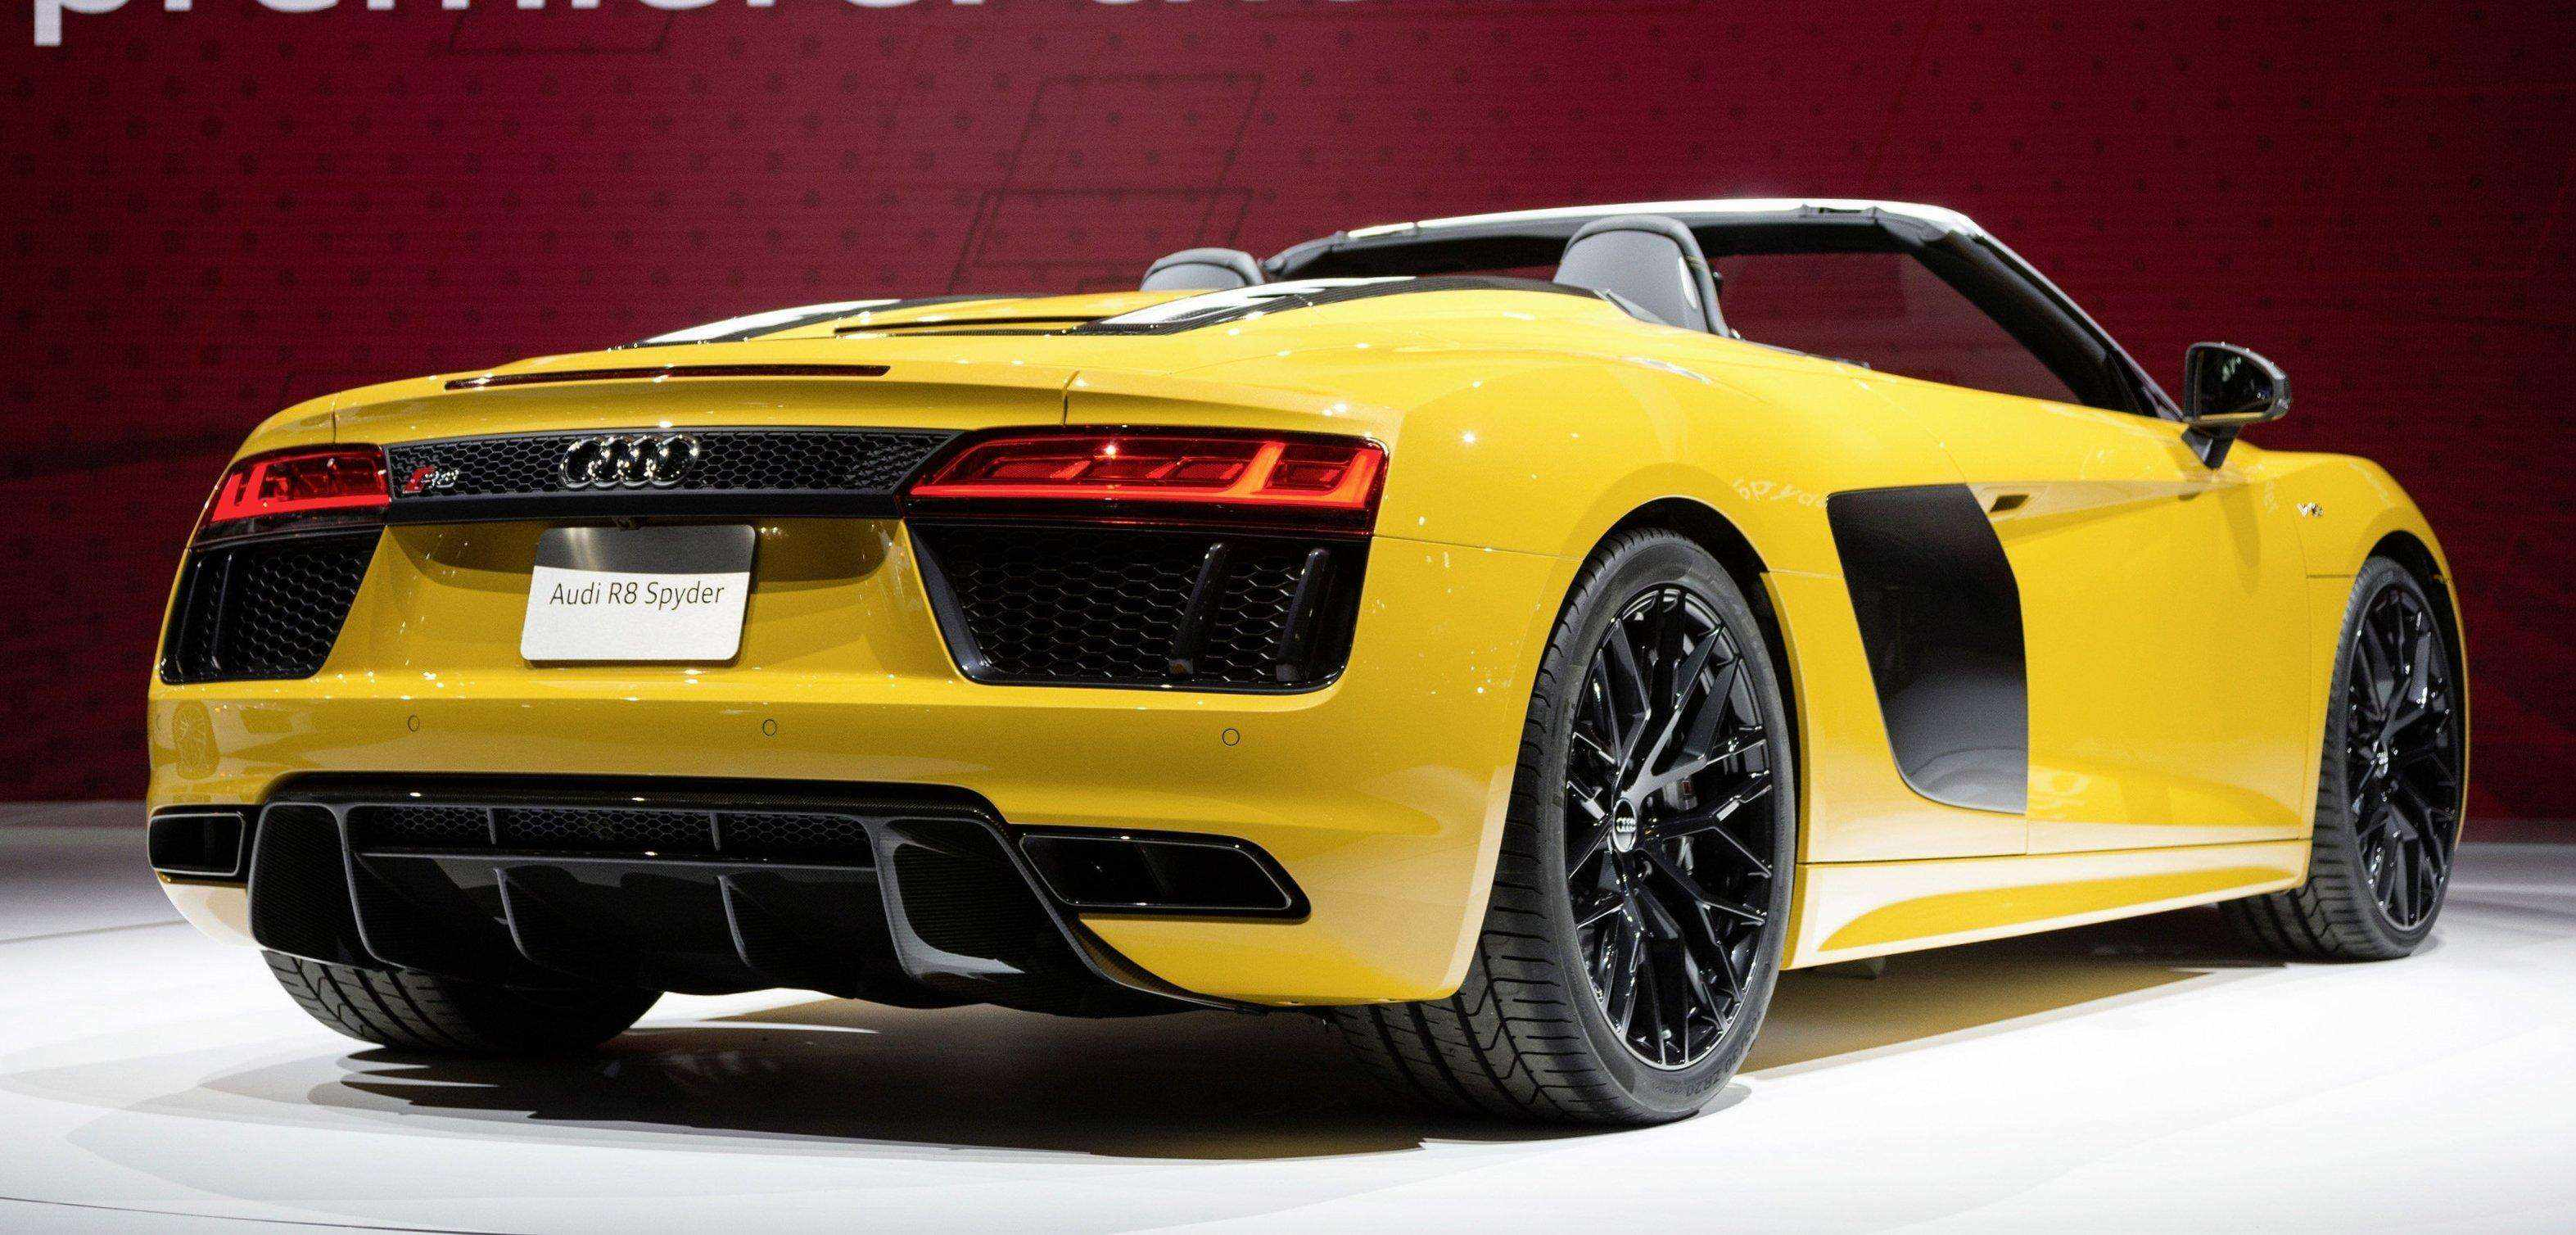 The new Audi R8 Spyder